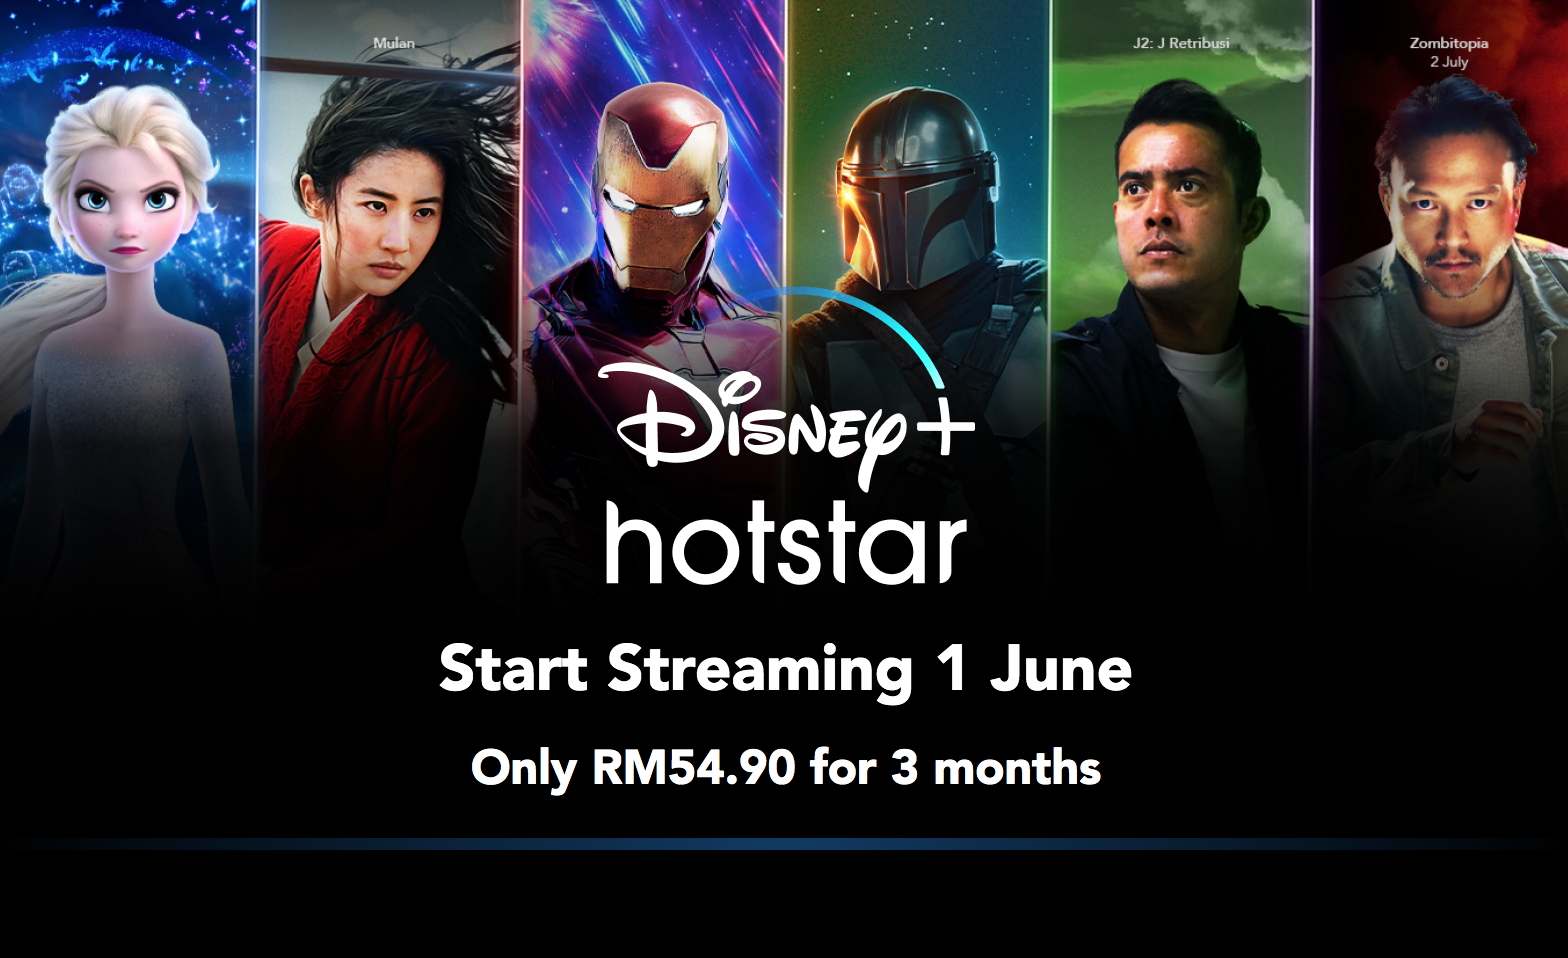 Disney Plus Hotstar Launches in M'sia on 1st June